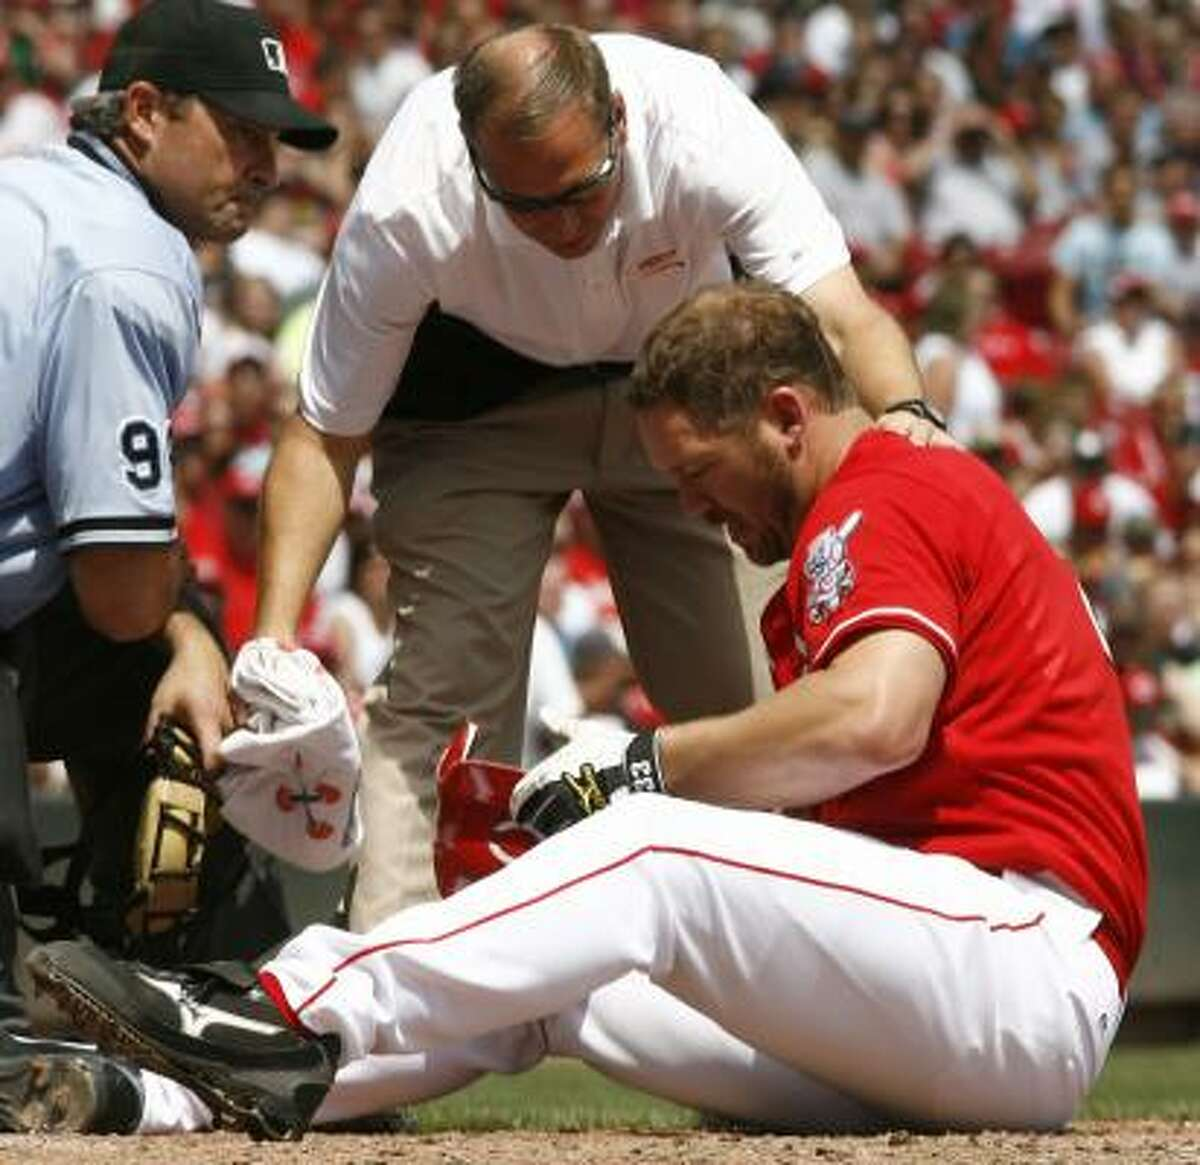 Cincinnati Reds' Scott Rolen, right, looks at his helmet as he checked out by Reds trainer Mark Mann,.